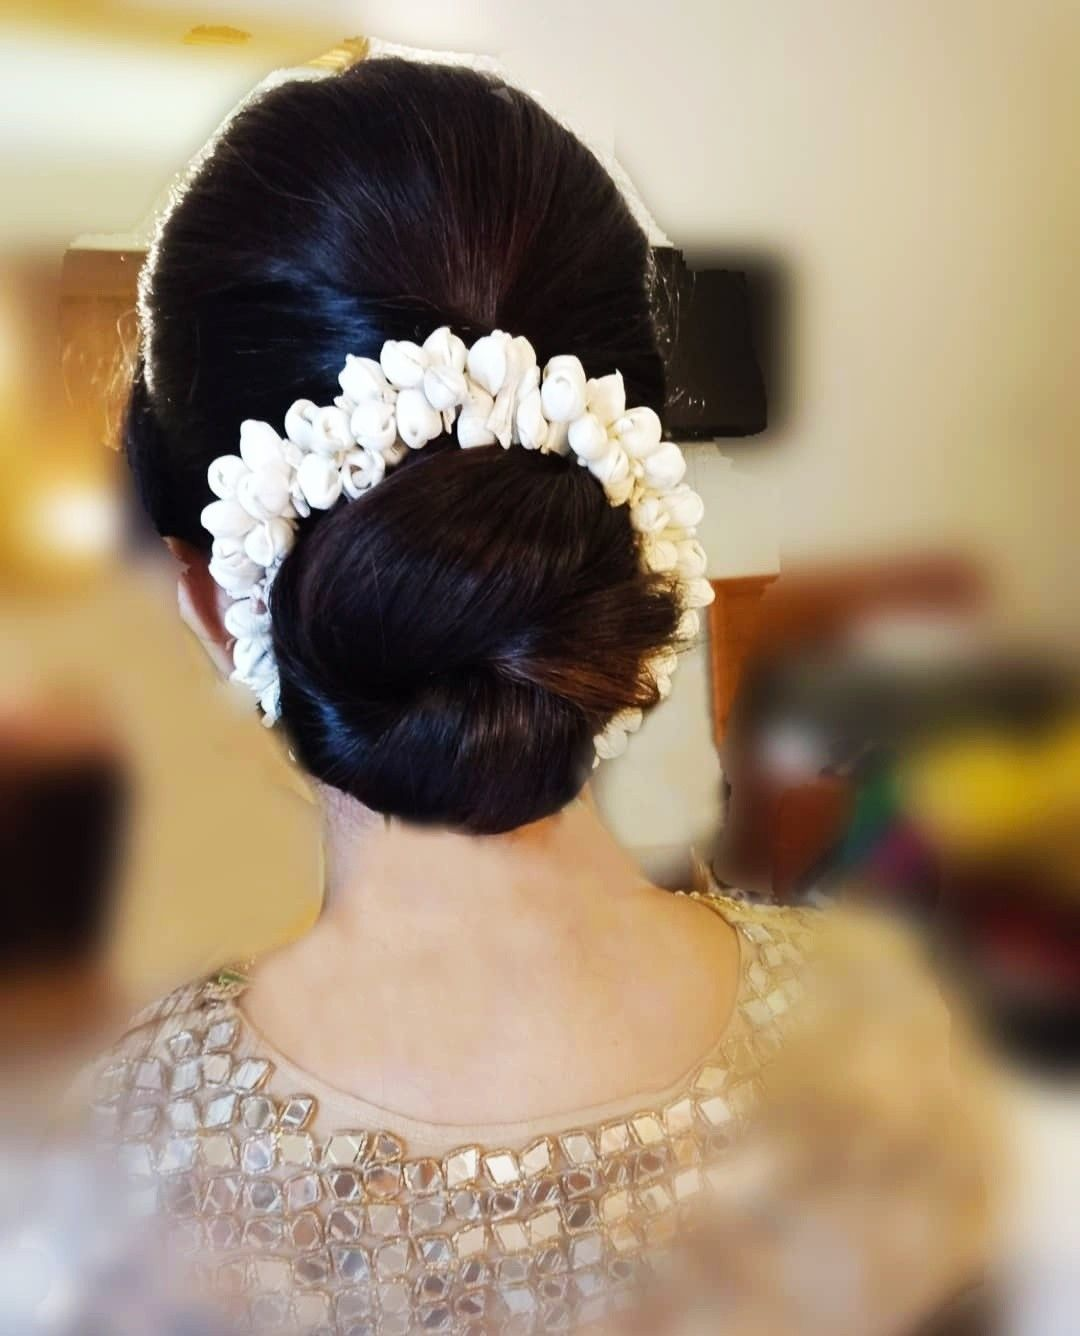 20 Breezy Low Bun Hairstyles With Gajra Breezy Gajra Hairstyles New Bridal Hair Buns Low Bun Hairstyles Hairdo Wedding